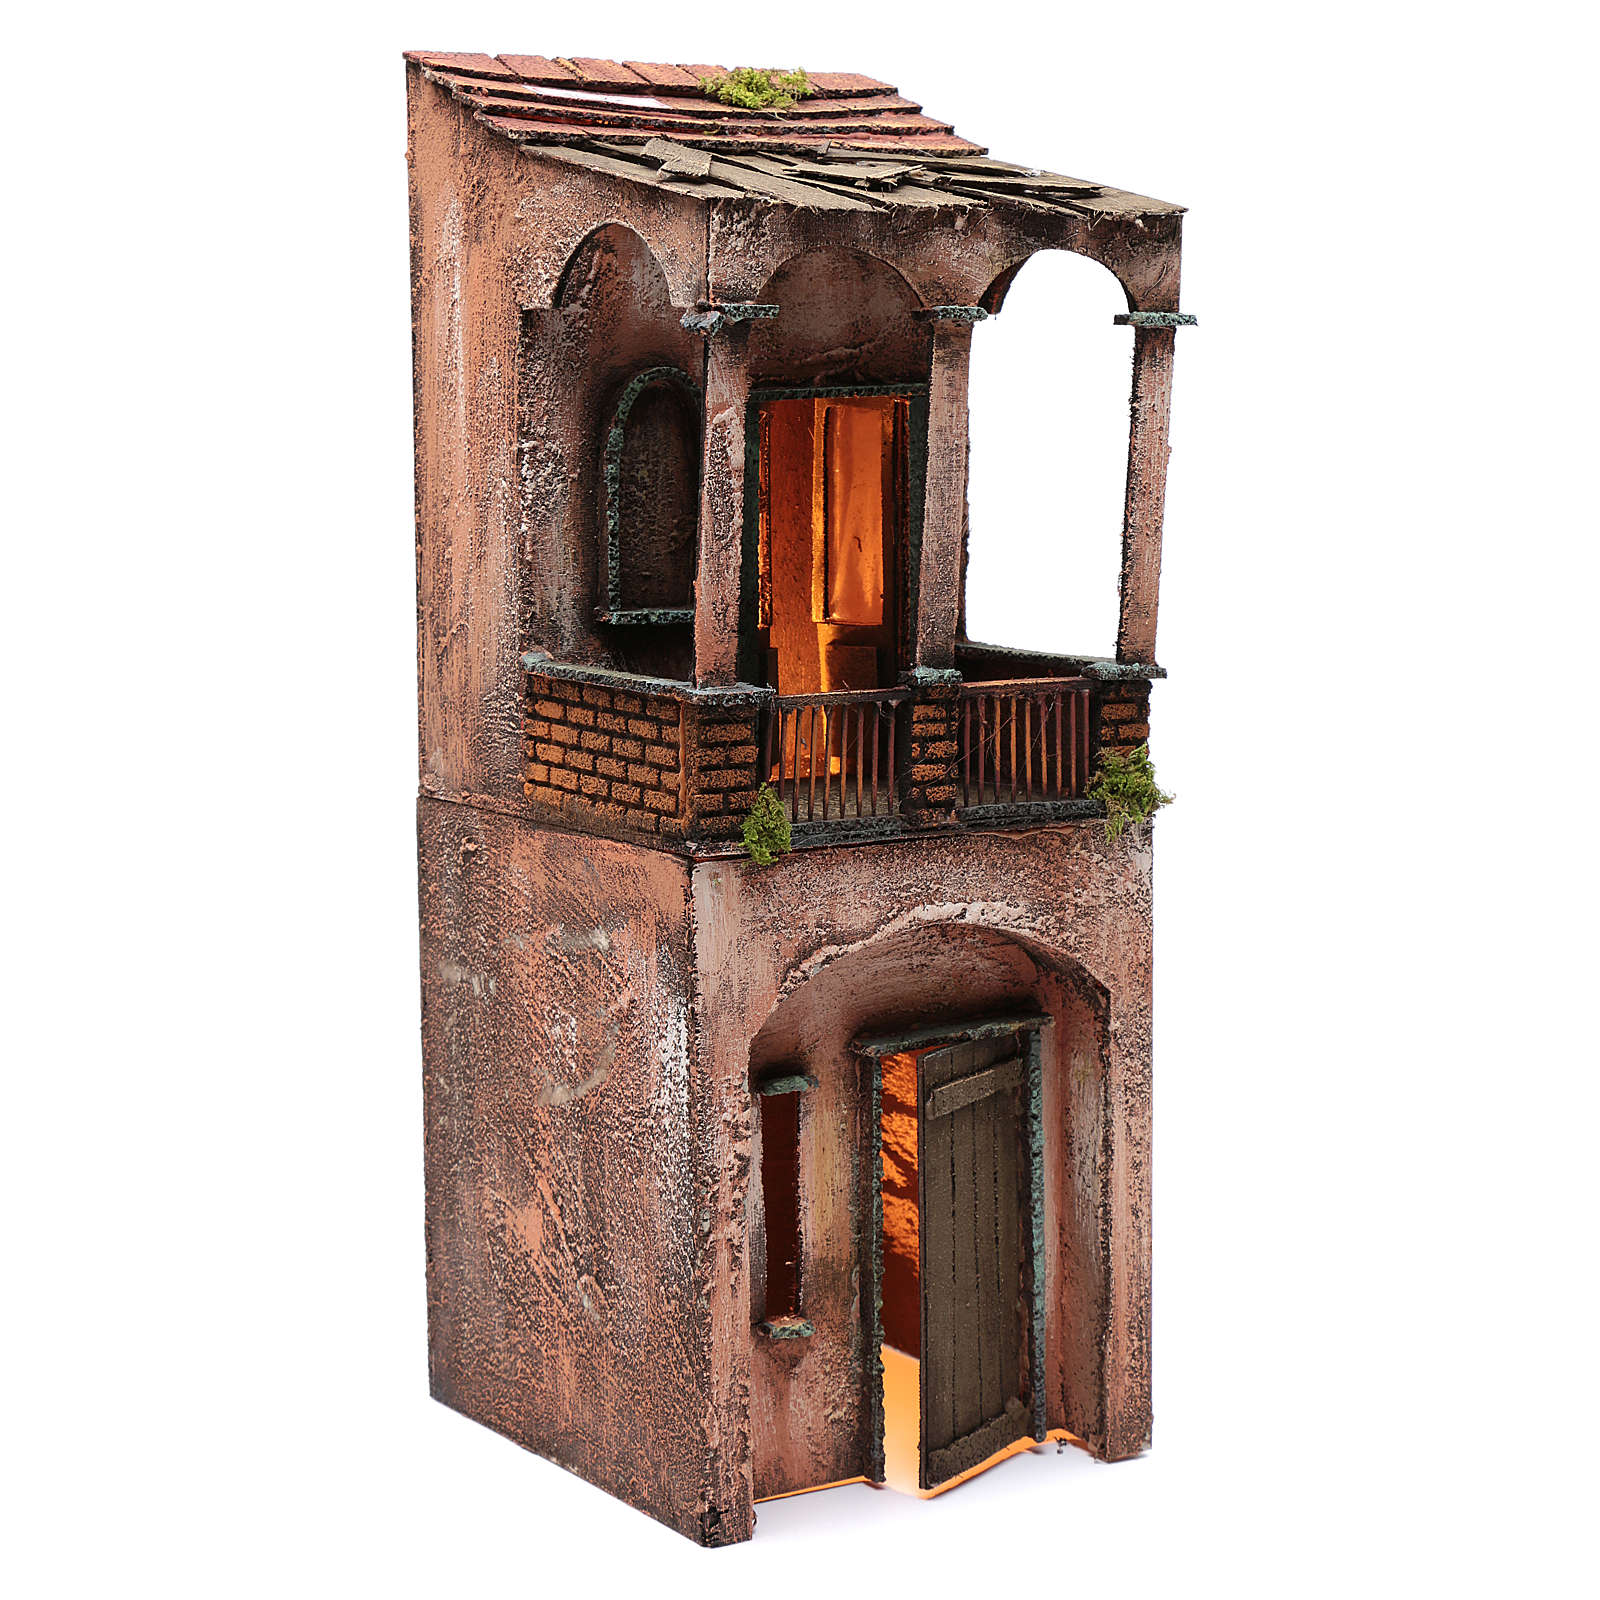 Wooden house for Neapolitan nativity scene 53X20X21 cm 4